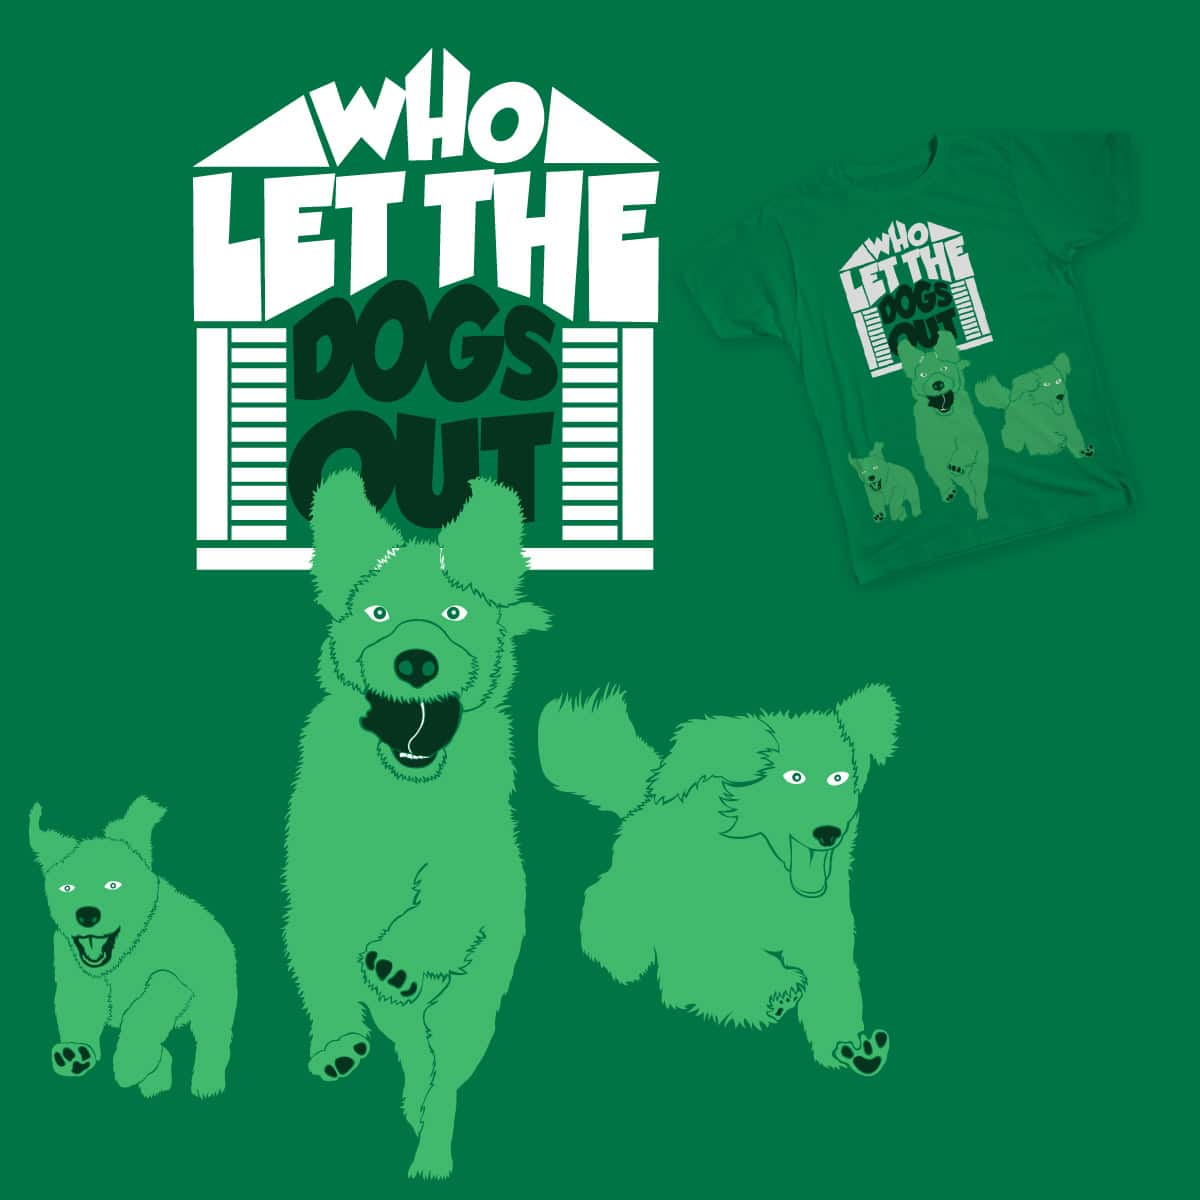 Who Let The Dogs Out by Pancake_Panda on Threadless